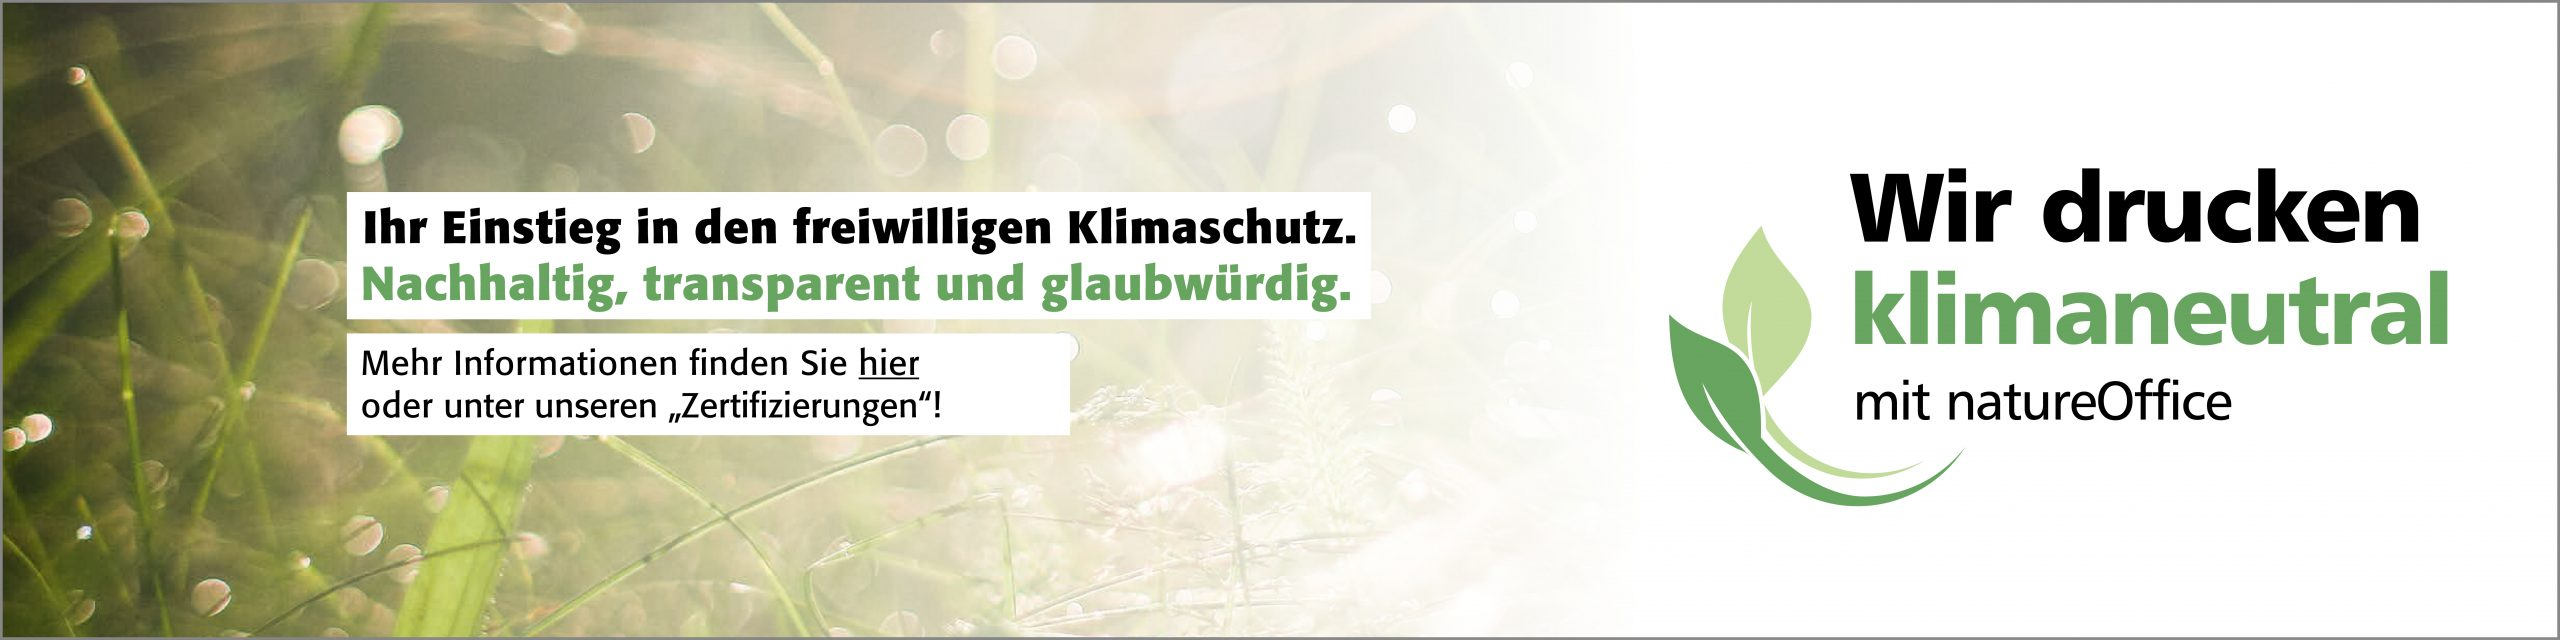 Website_Slider_Klimaneutral-scaled